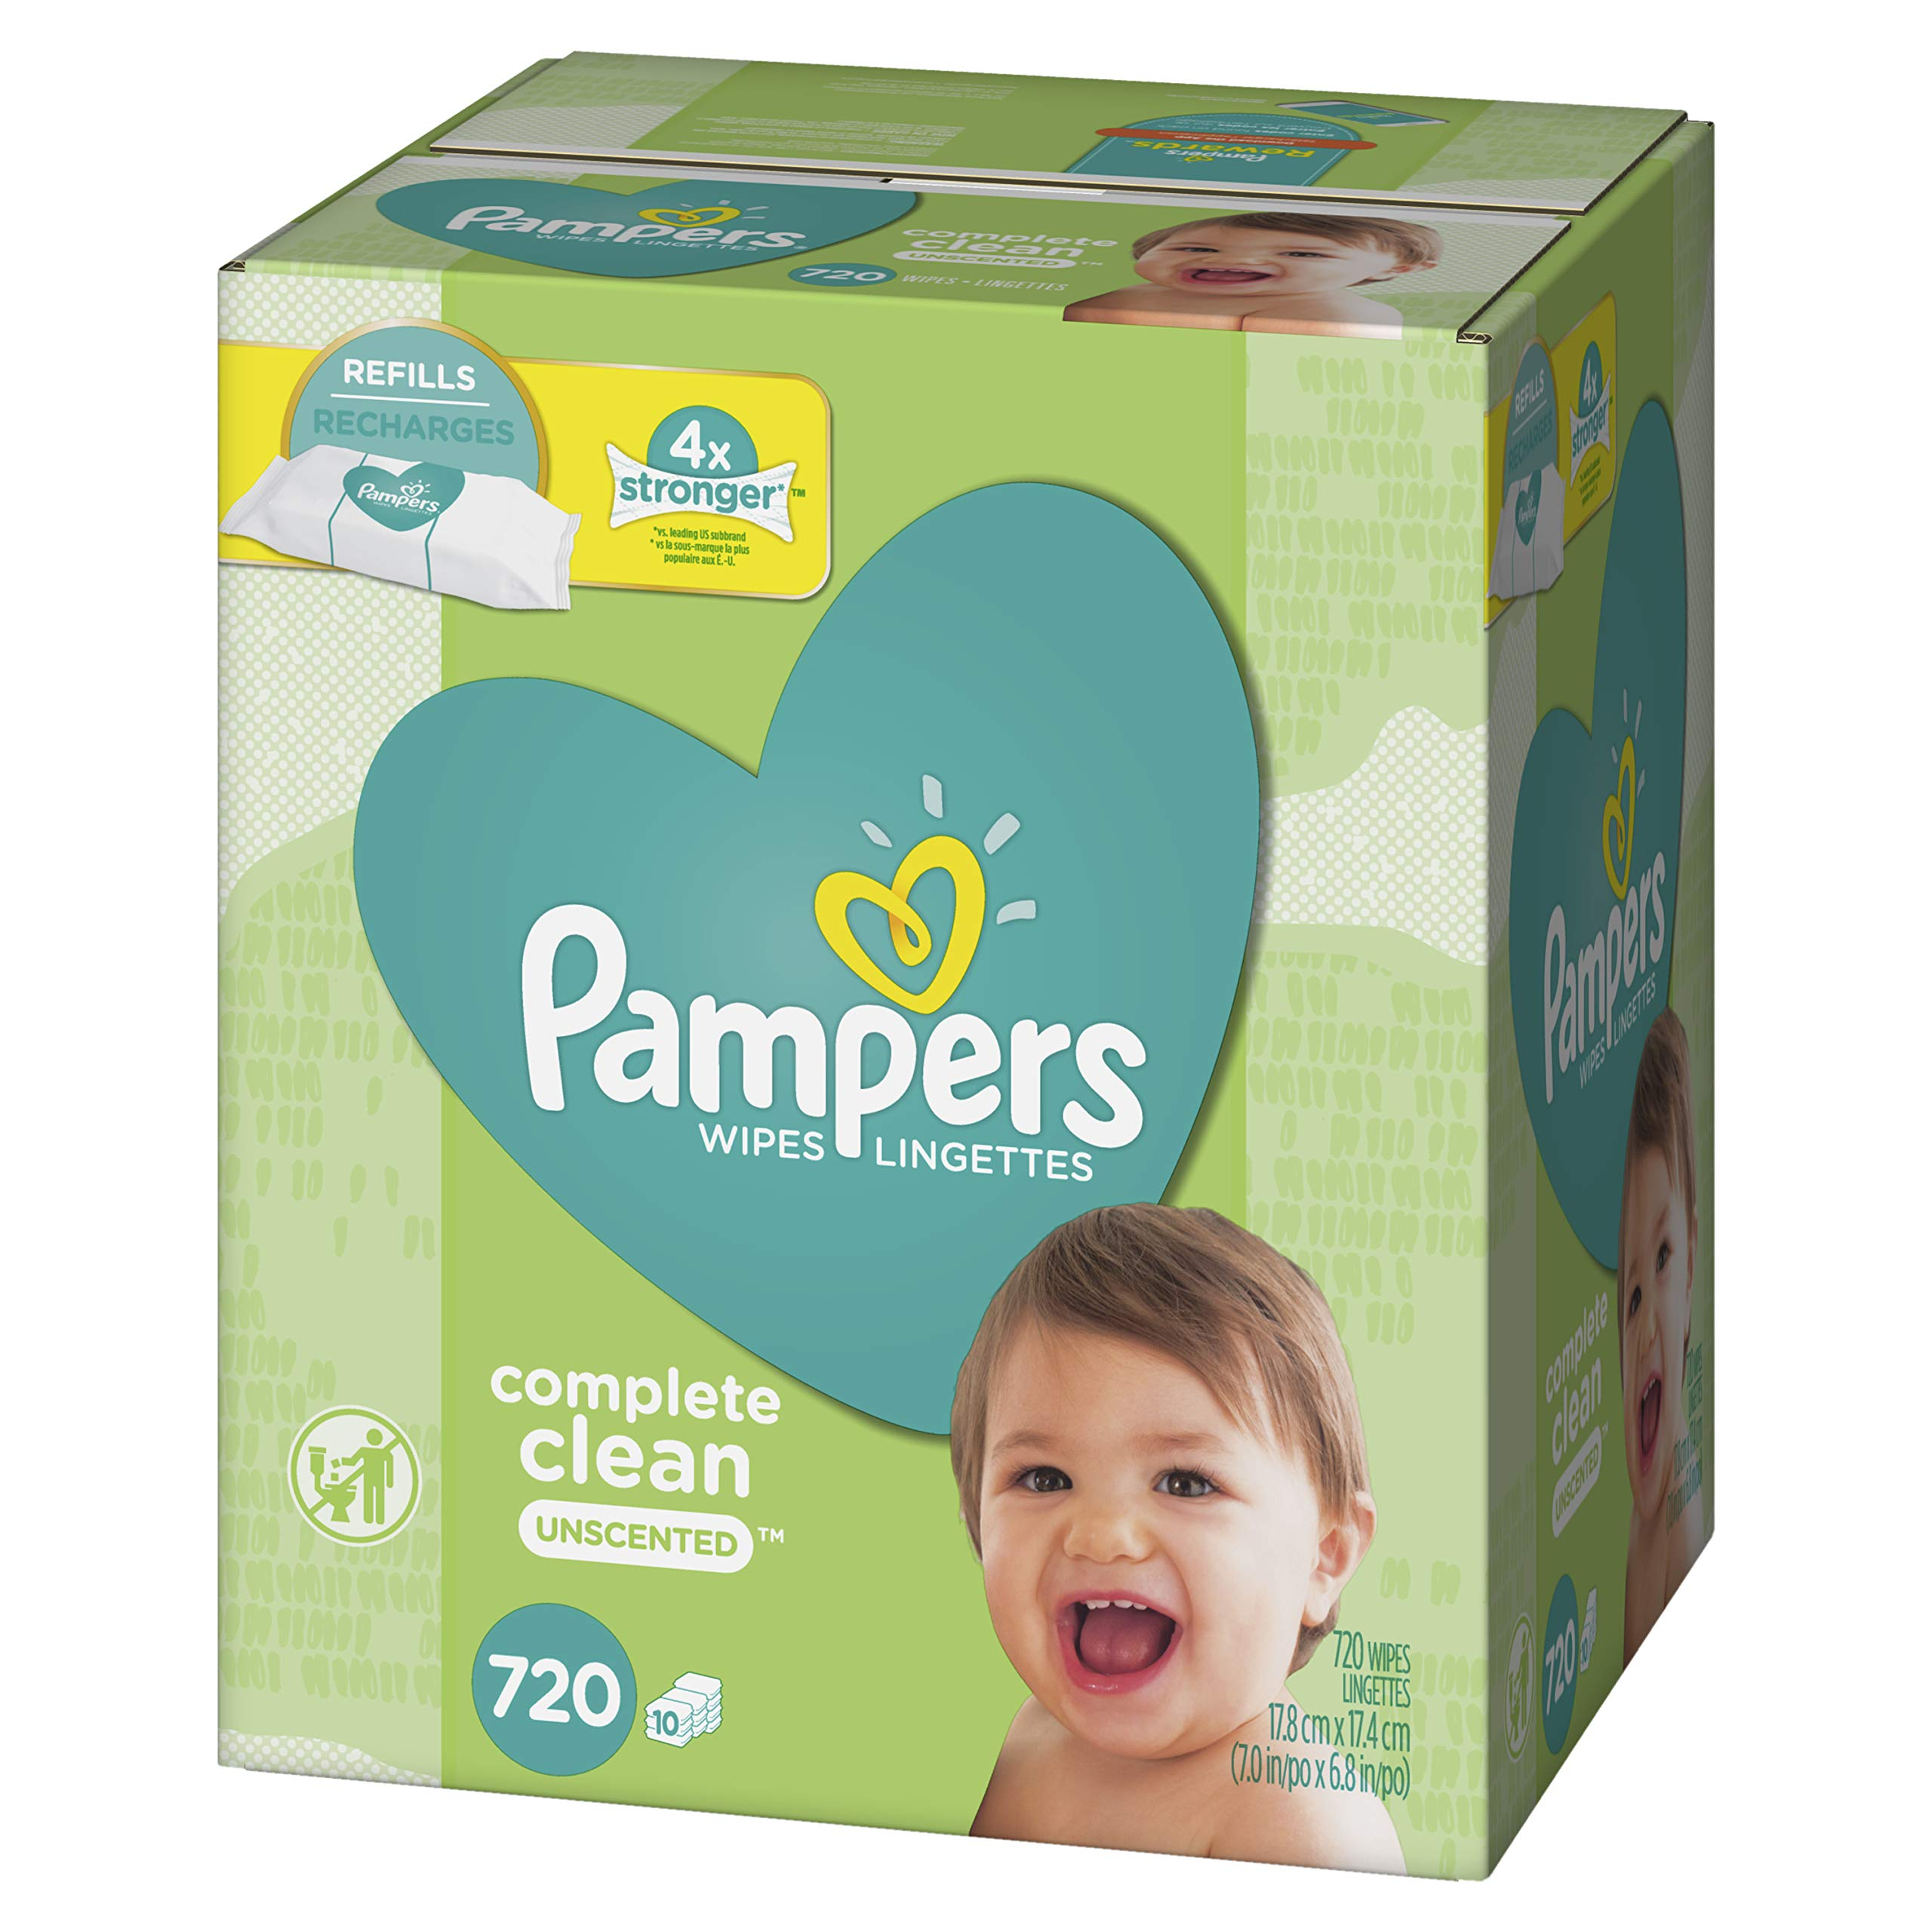 Baby Wipes, Pampers Sensitive Water Baby Diaper Wipes, Complete Clean Unscented, 10 Refill Packs for Dispenser Tub, 720 Total Wipes by Pampers